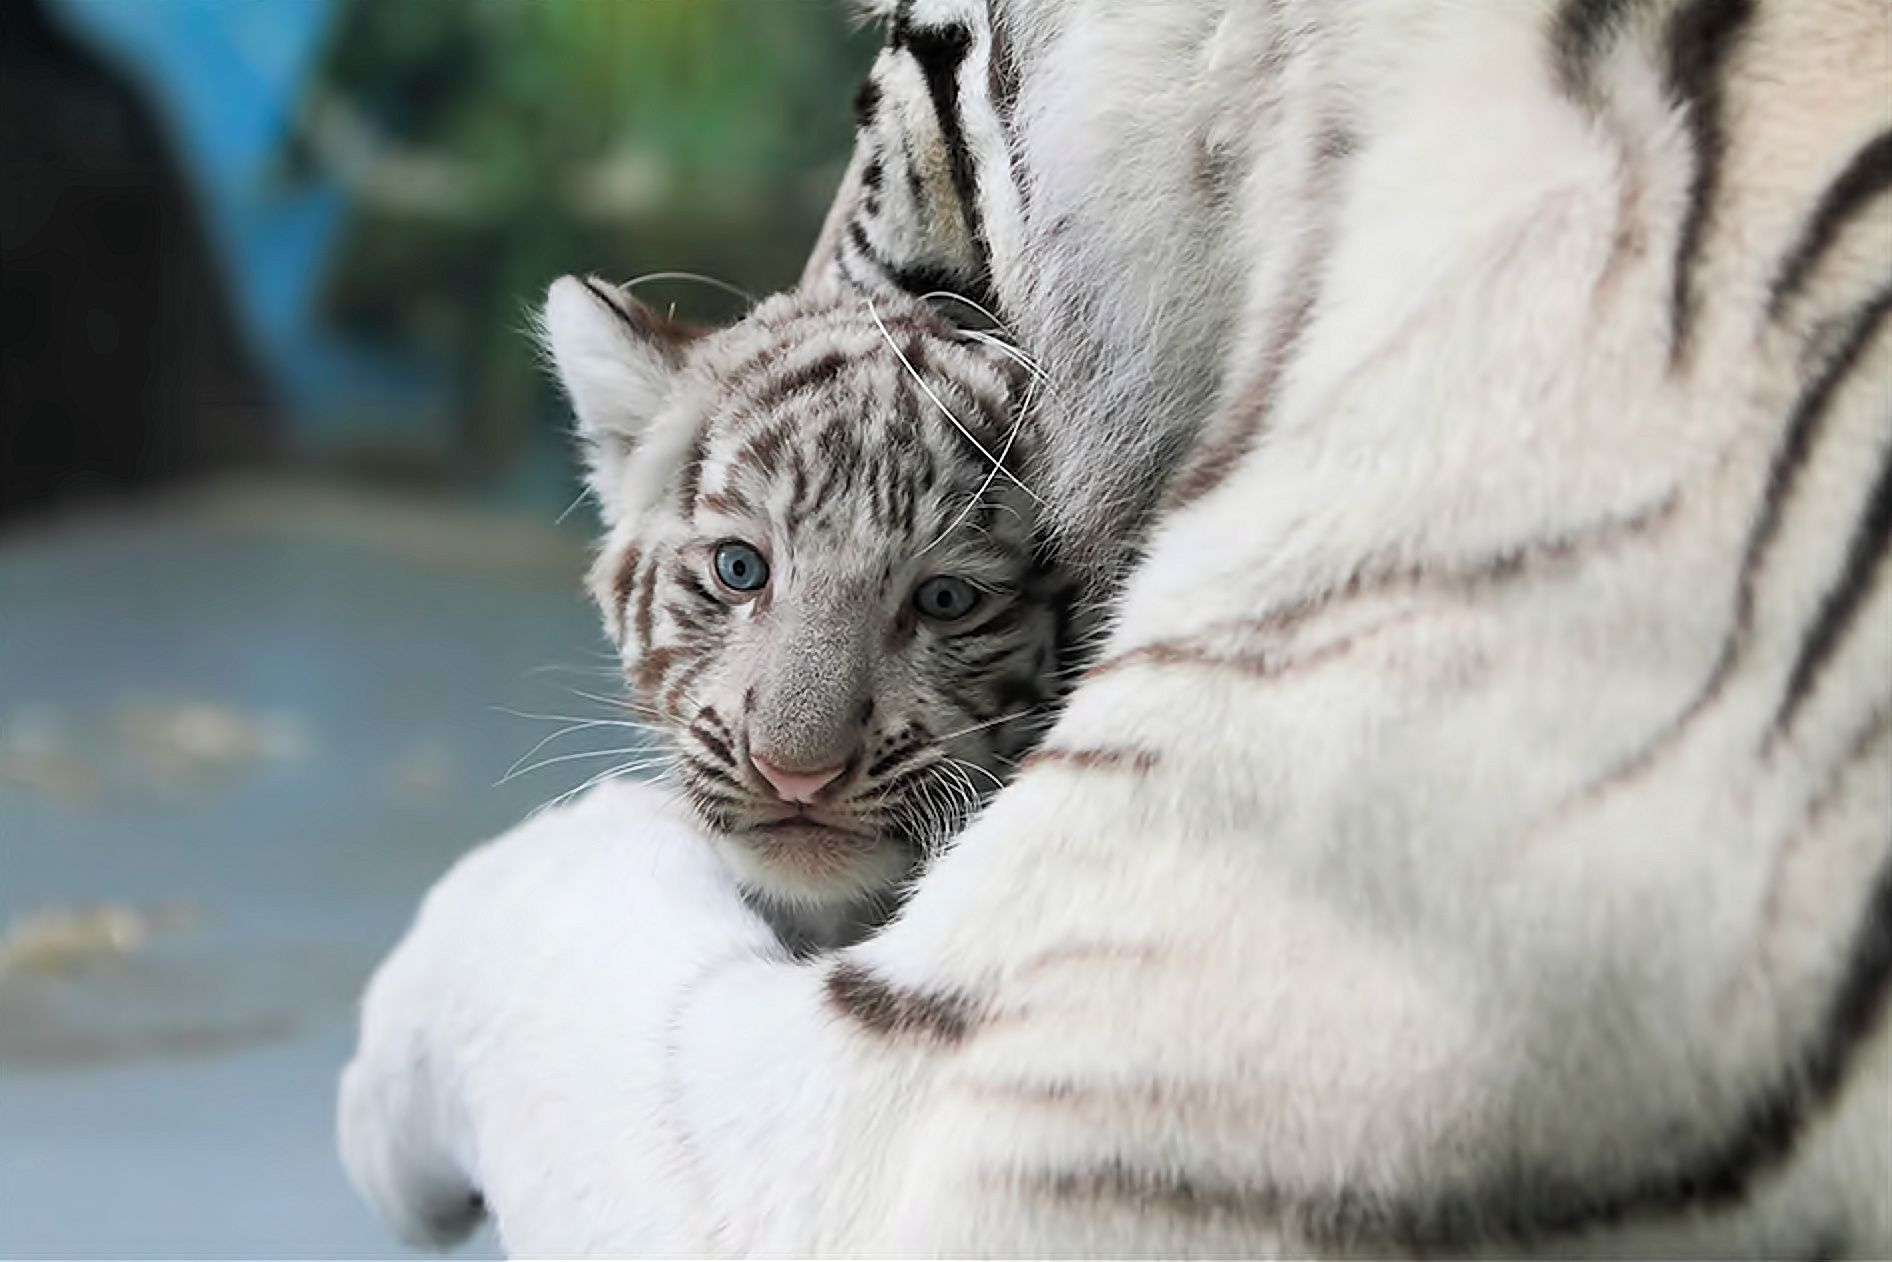 WhiteTiger0025.jpg #white #tiger  #animal #endangered #predator #majestic